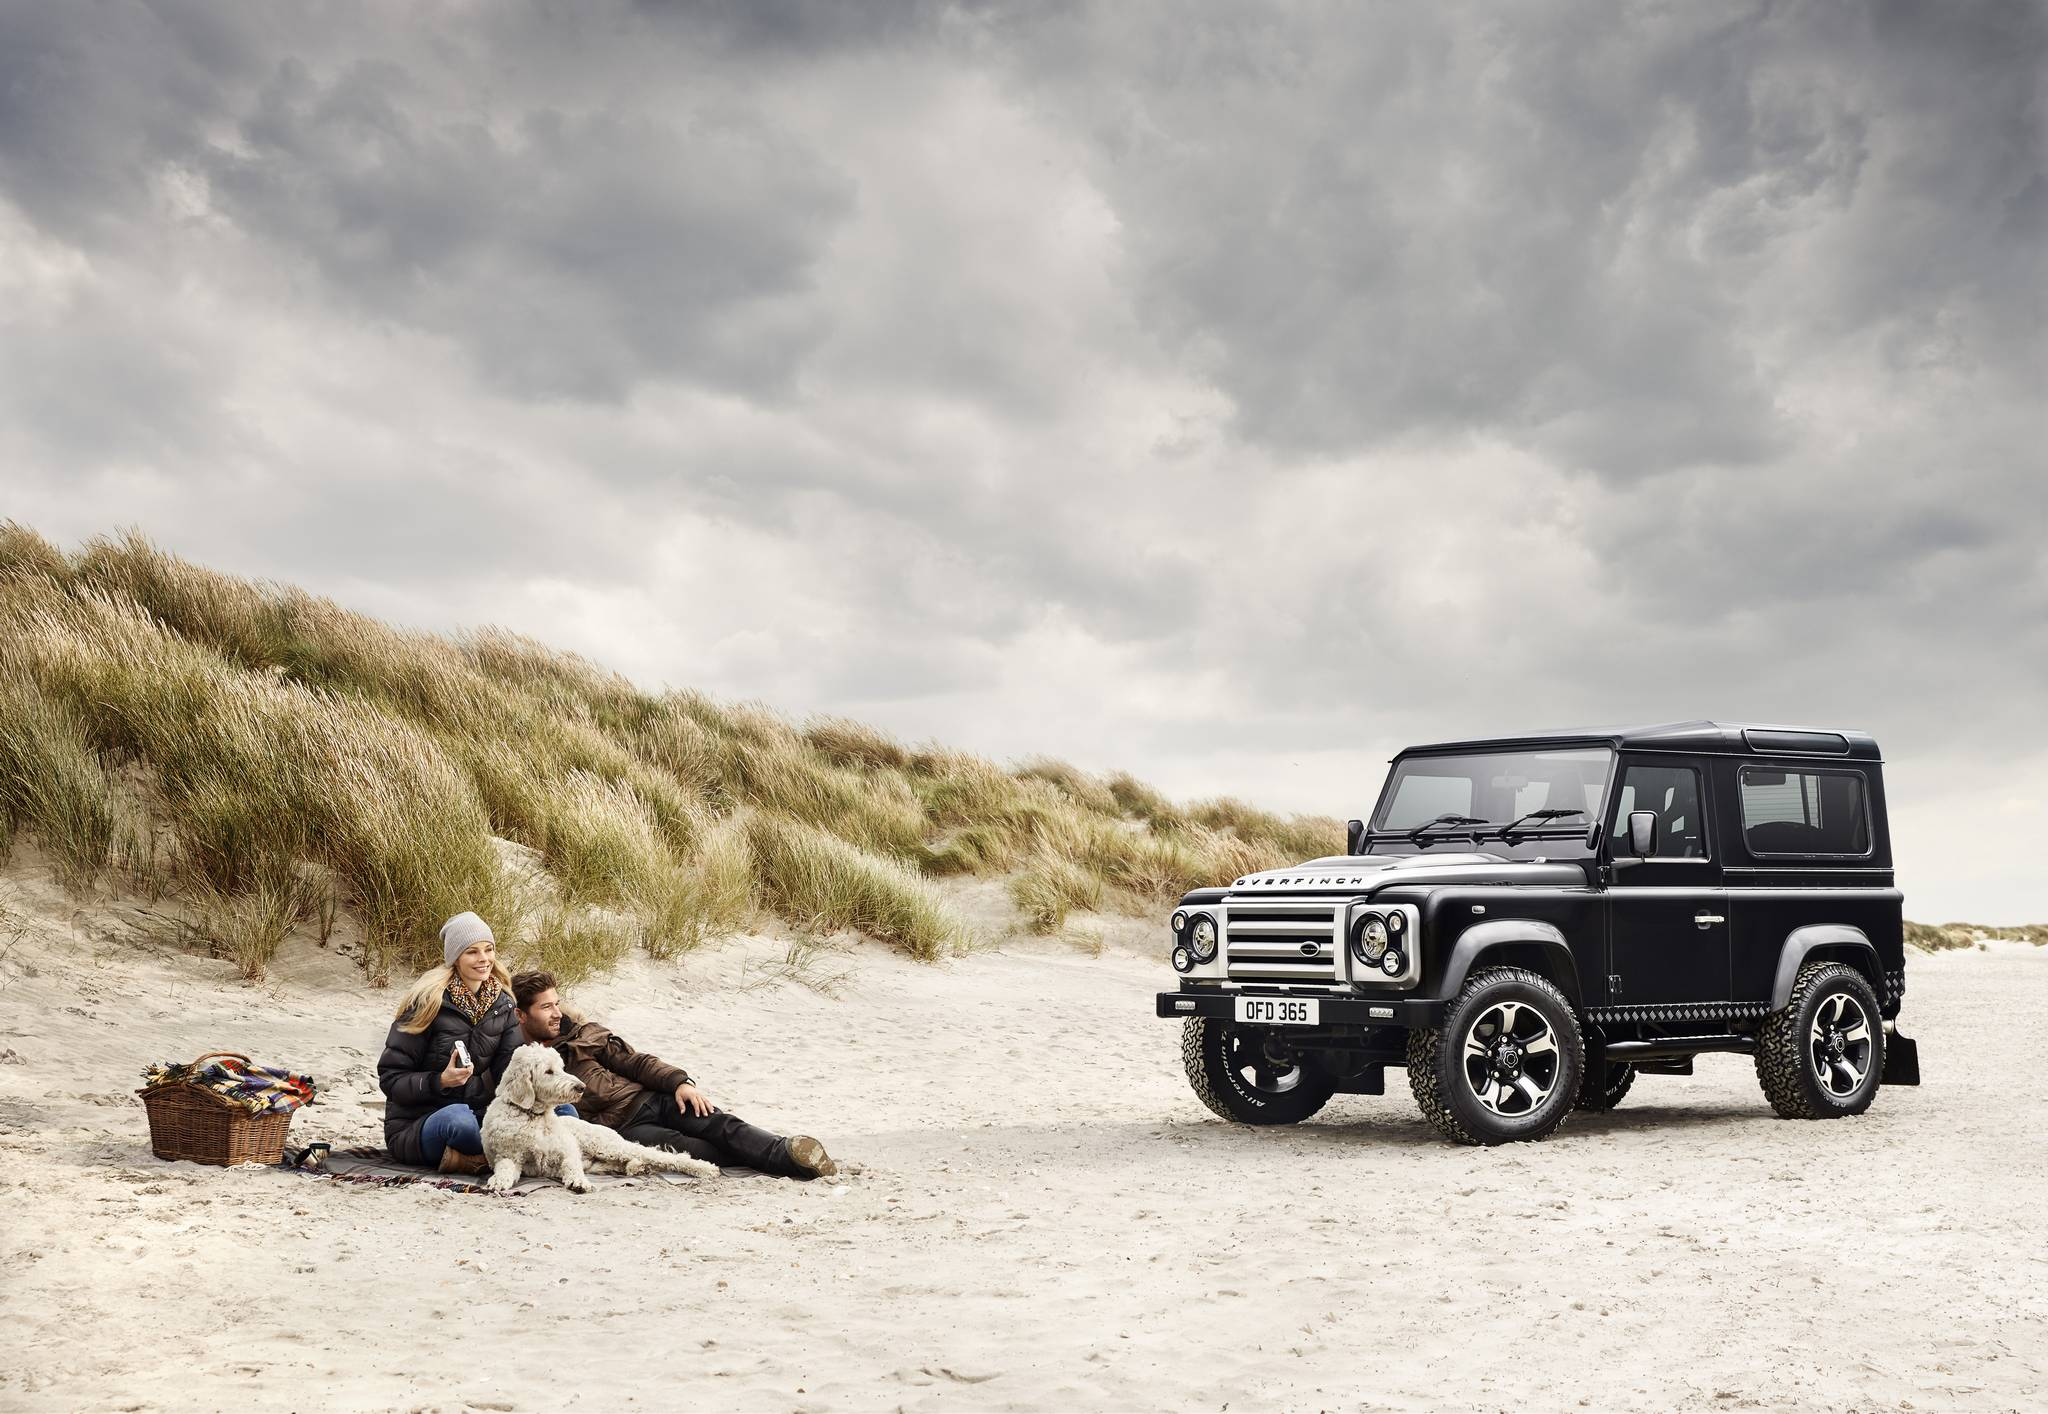 emerald site metal cys official landrover website vehicle rover land gallery article film pearl